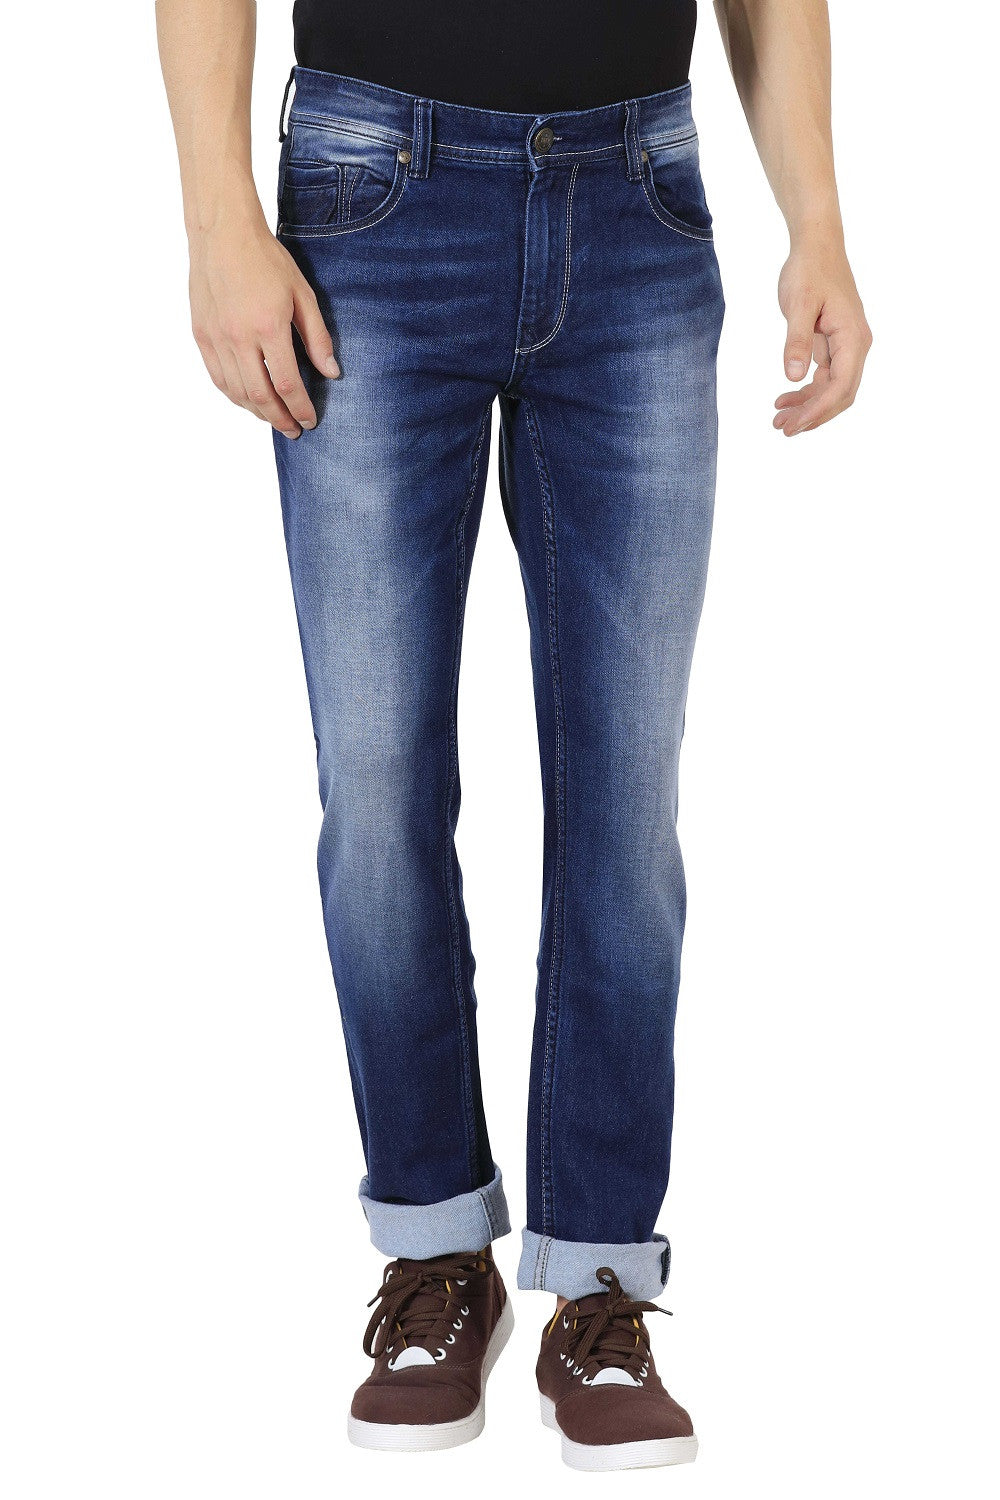 IMYOUNG Mid Blue Slim Fit Jeans